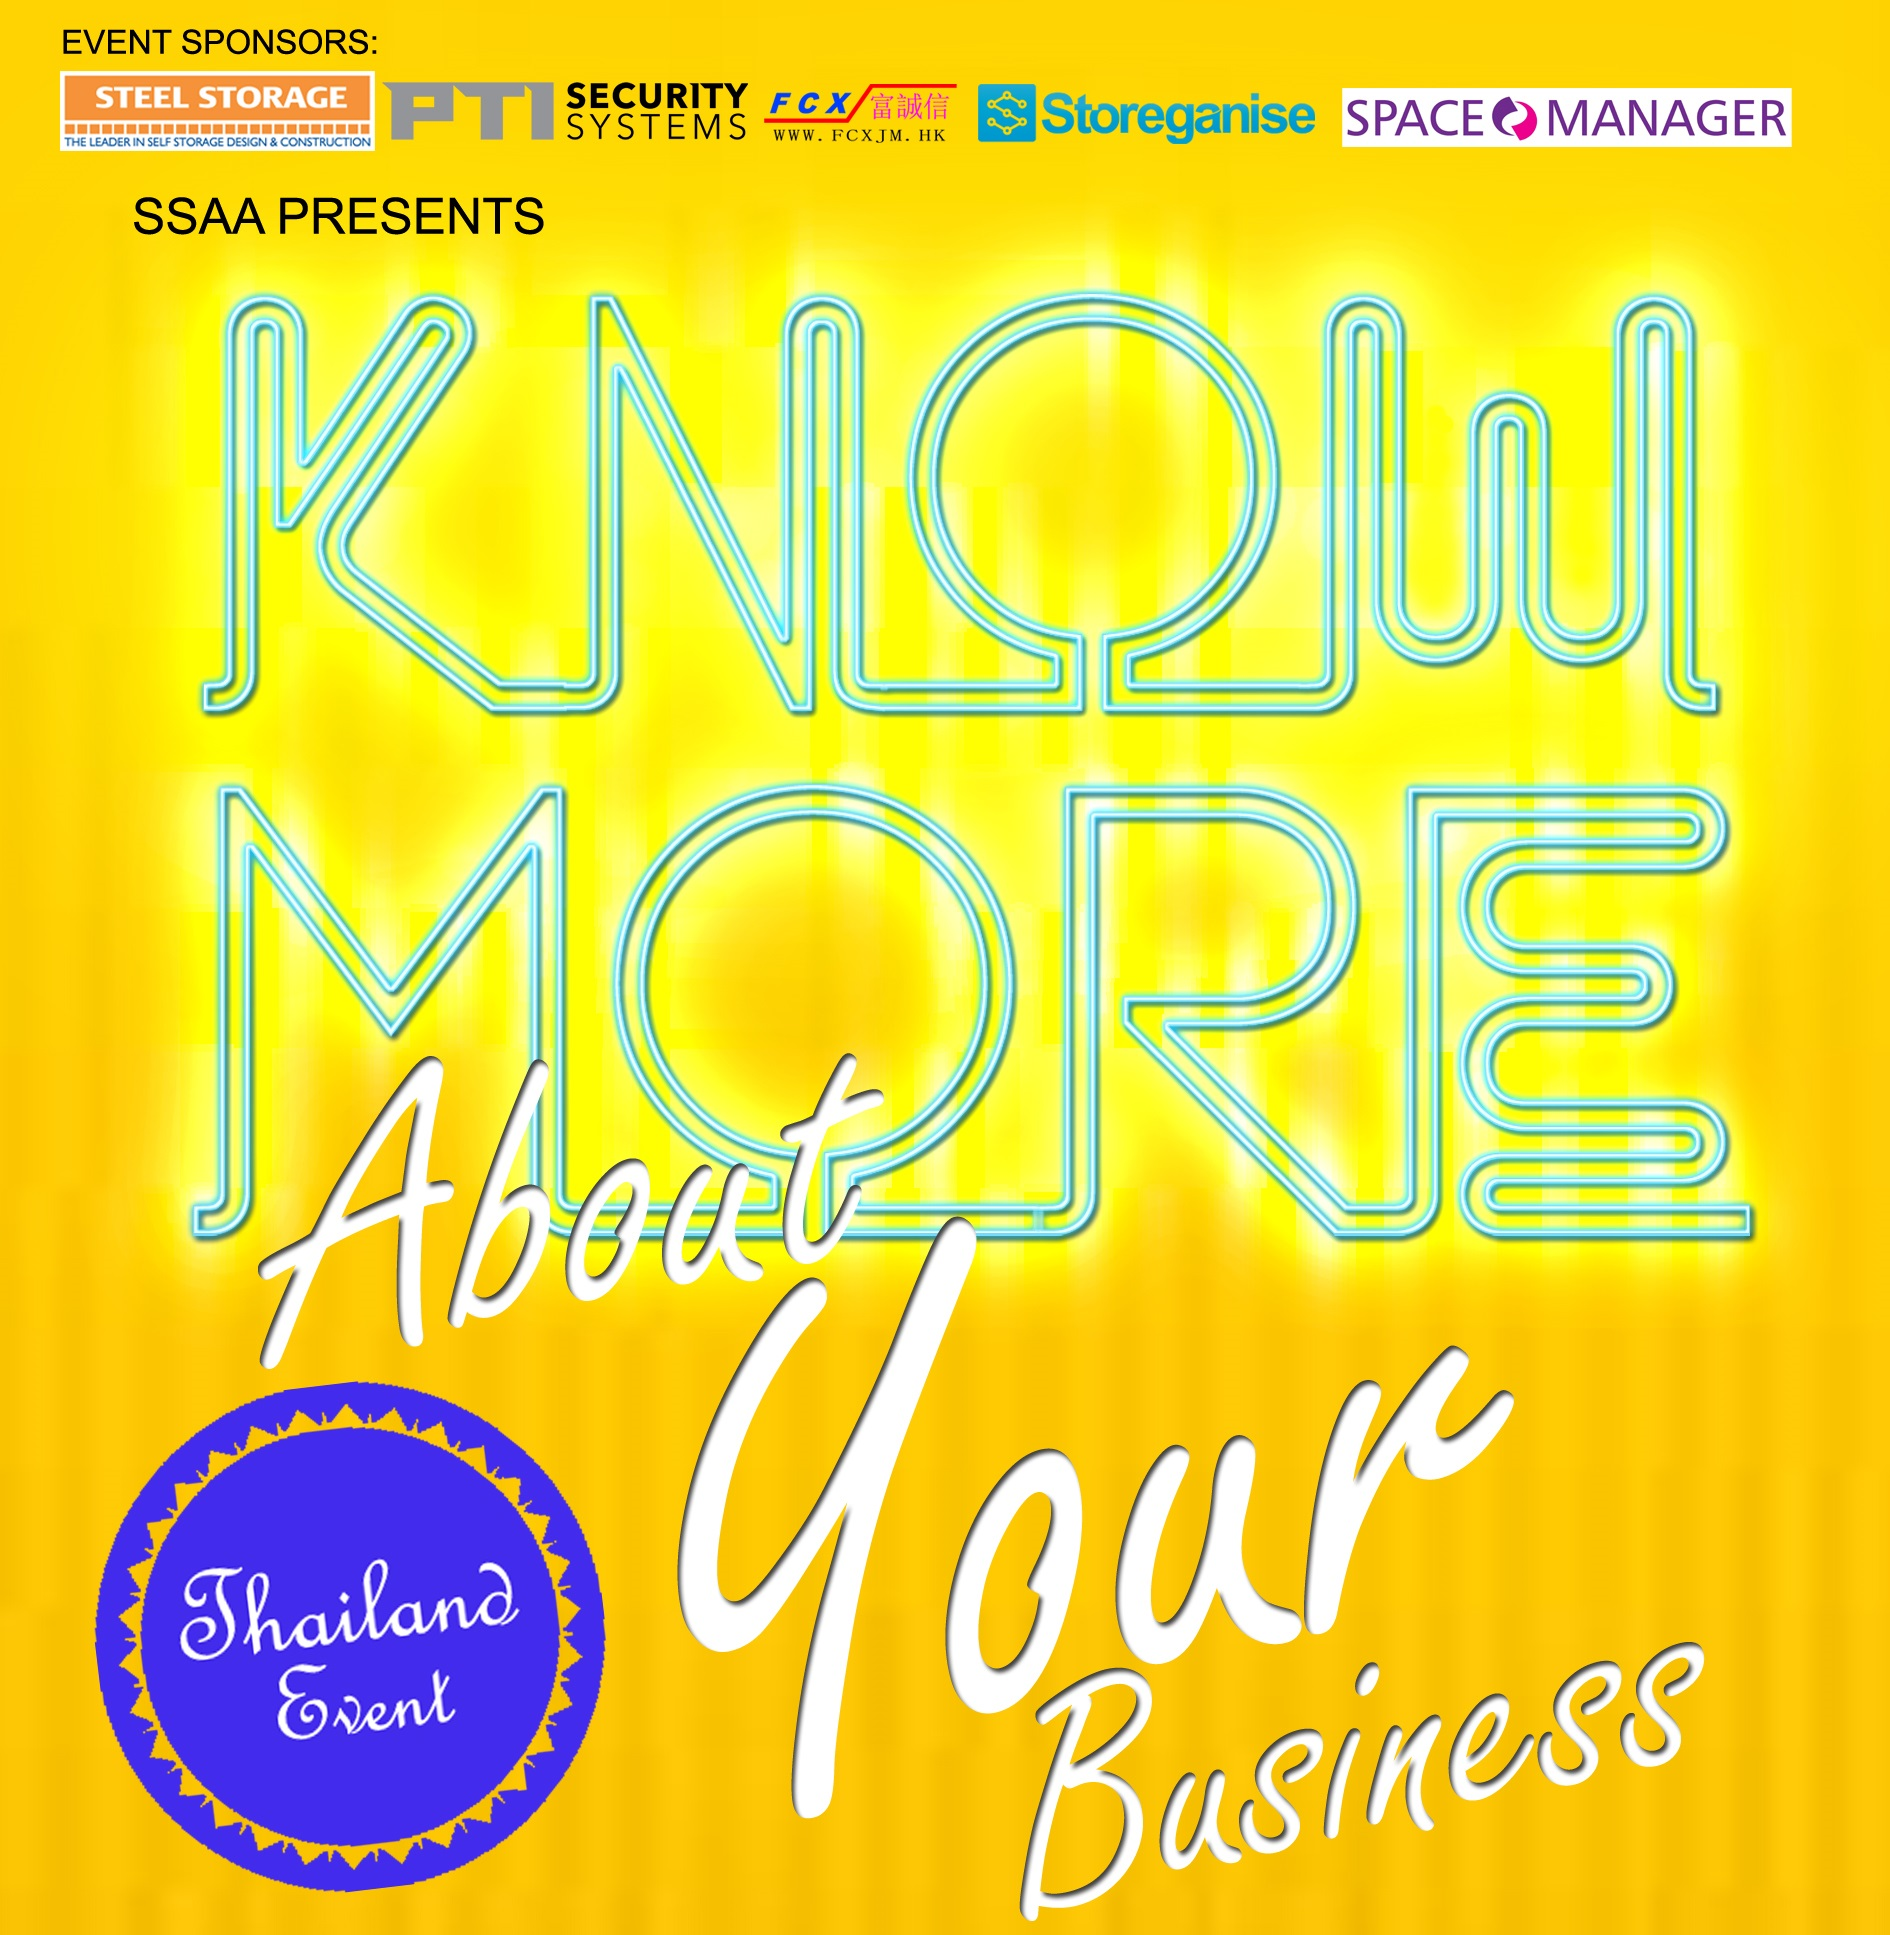 Mar 5 Bangkok - Know More About Your Business